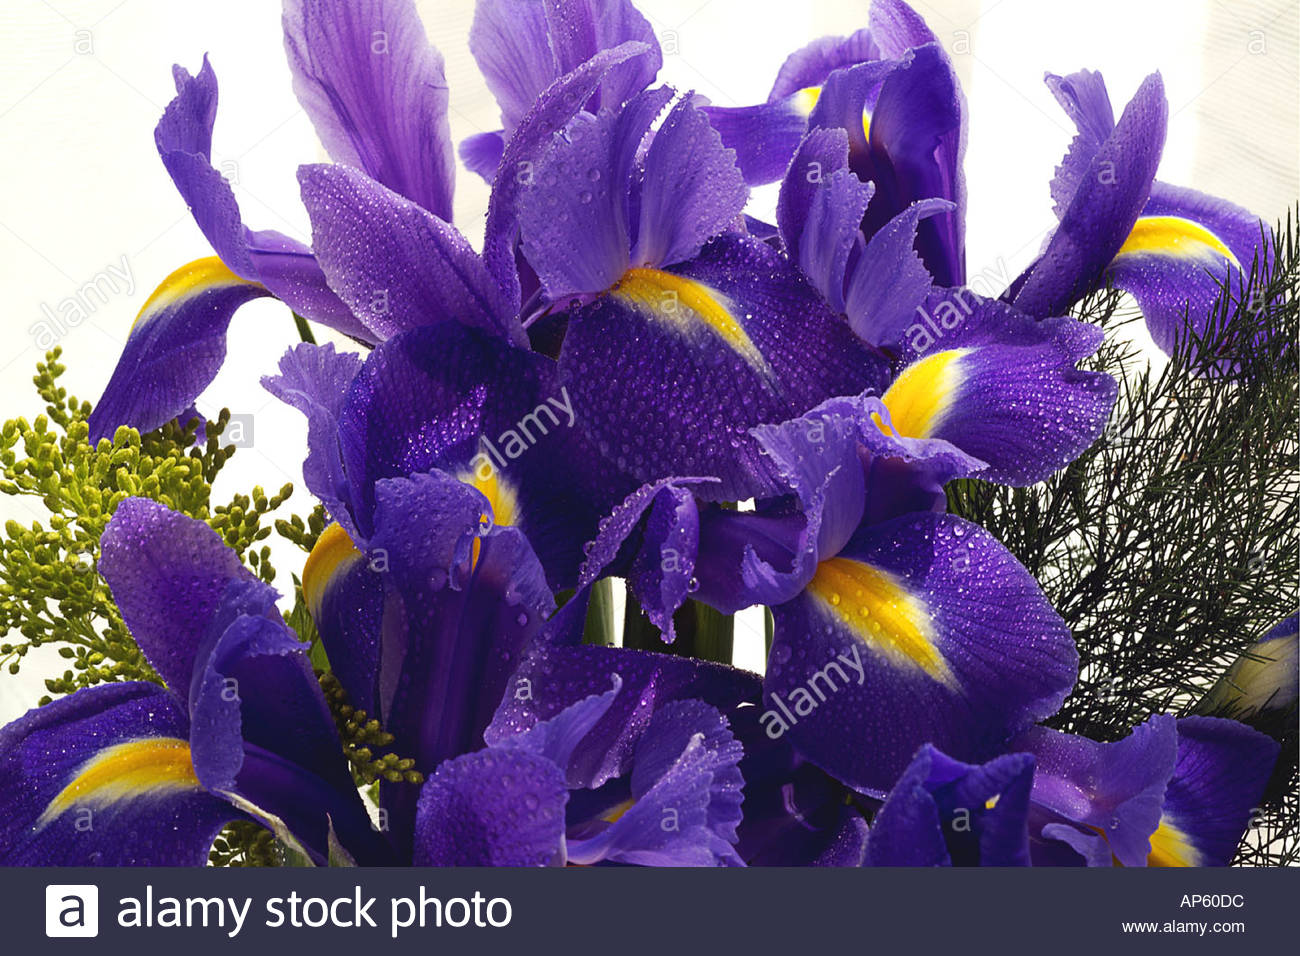 Iris Flower Arrangement Stock Photos Iris Flower Arrangement Stock